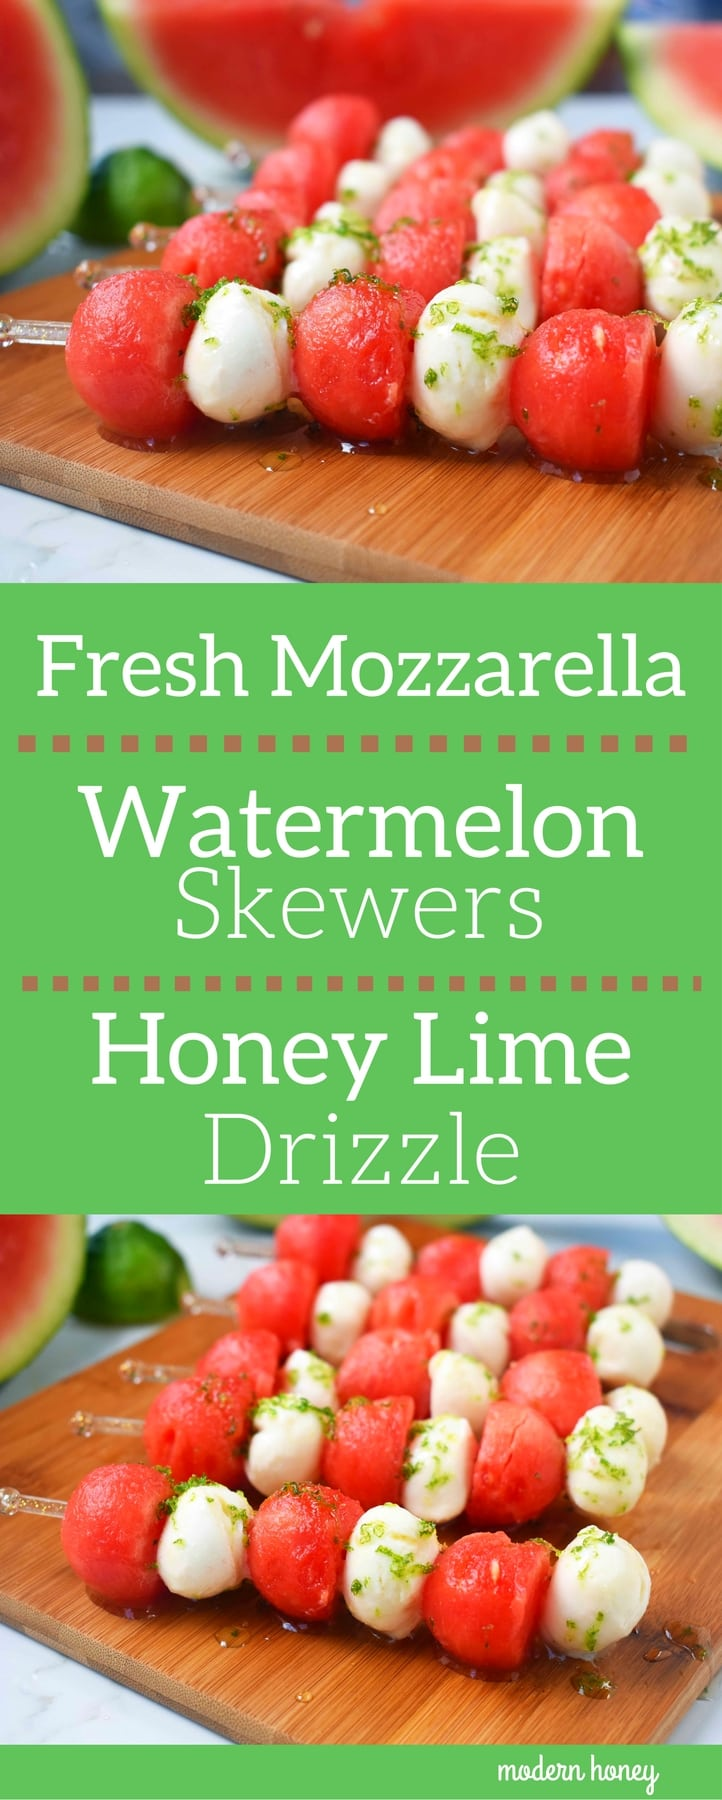 Fresh Mozzarella Watermelon Skewers with Honey Lime Drizzle. Round watermelon and fresh mozzarella balls and layered to make a kabob and drizzled with homemade honey lime sauce. A perfect appetizer or side dish for any BBQ or party. www.modernhoney.com